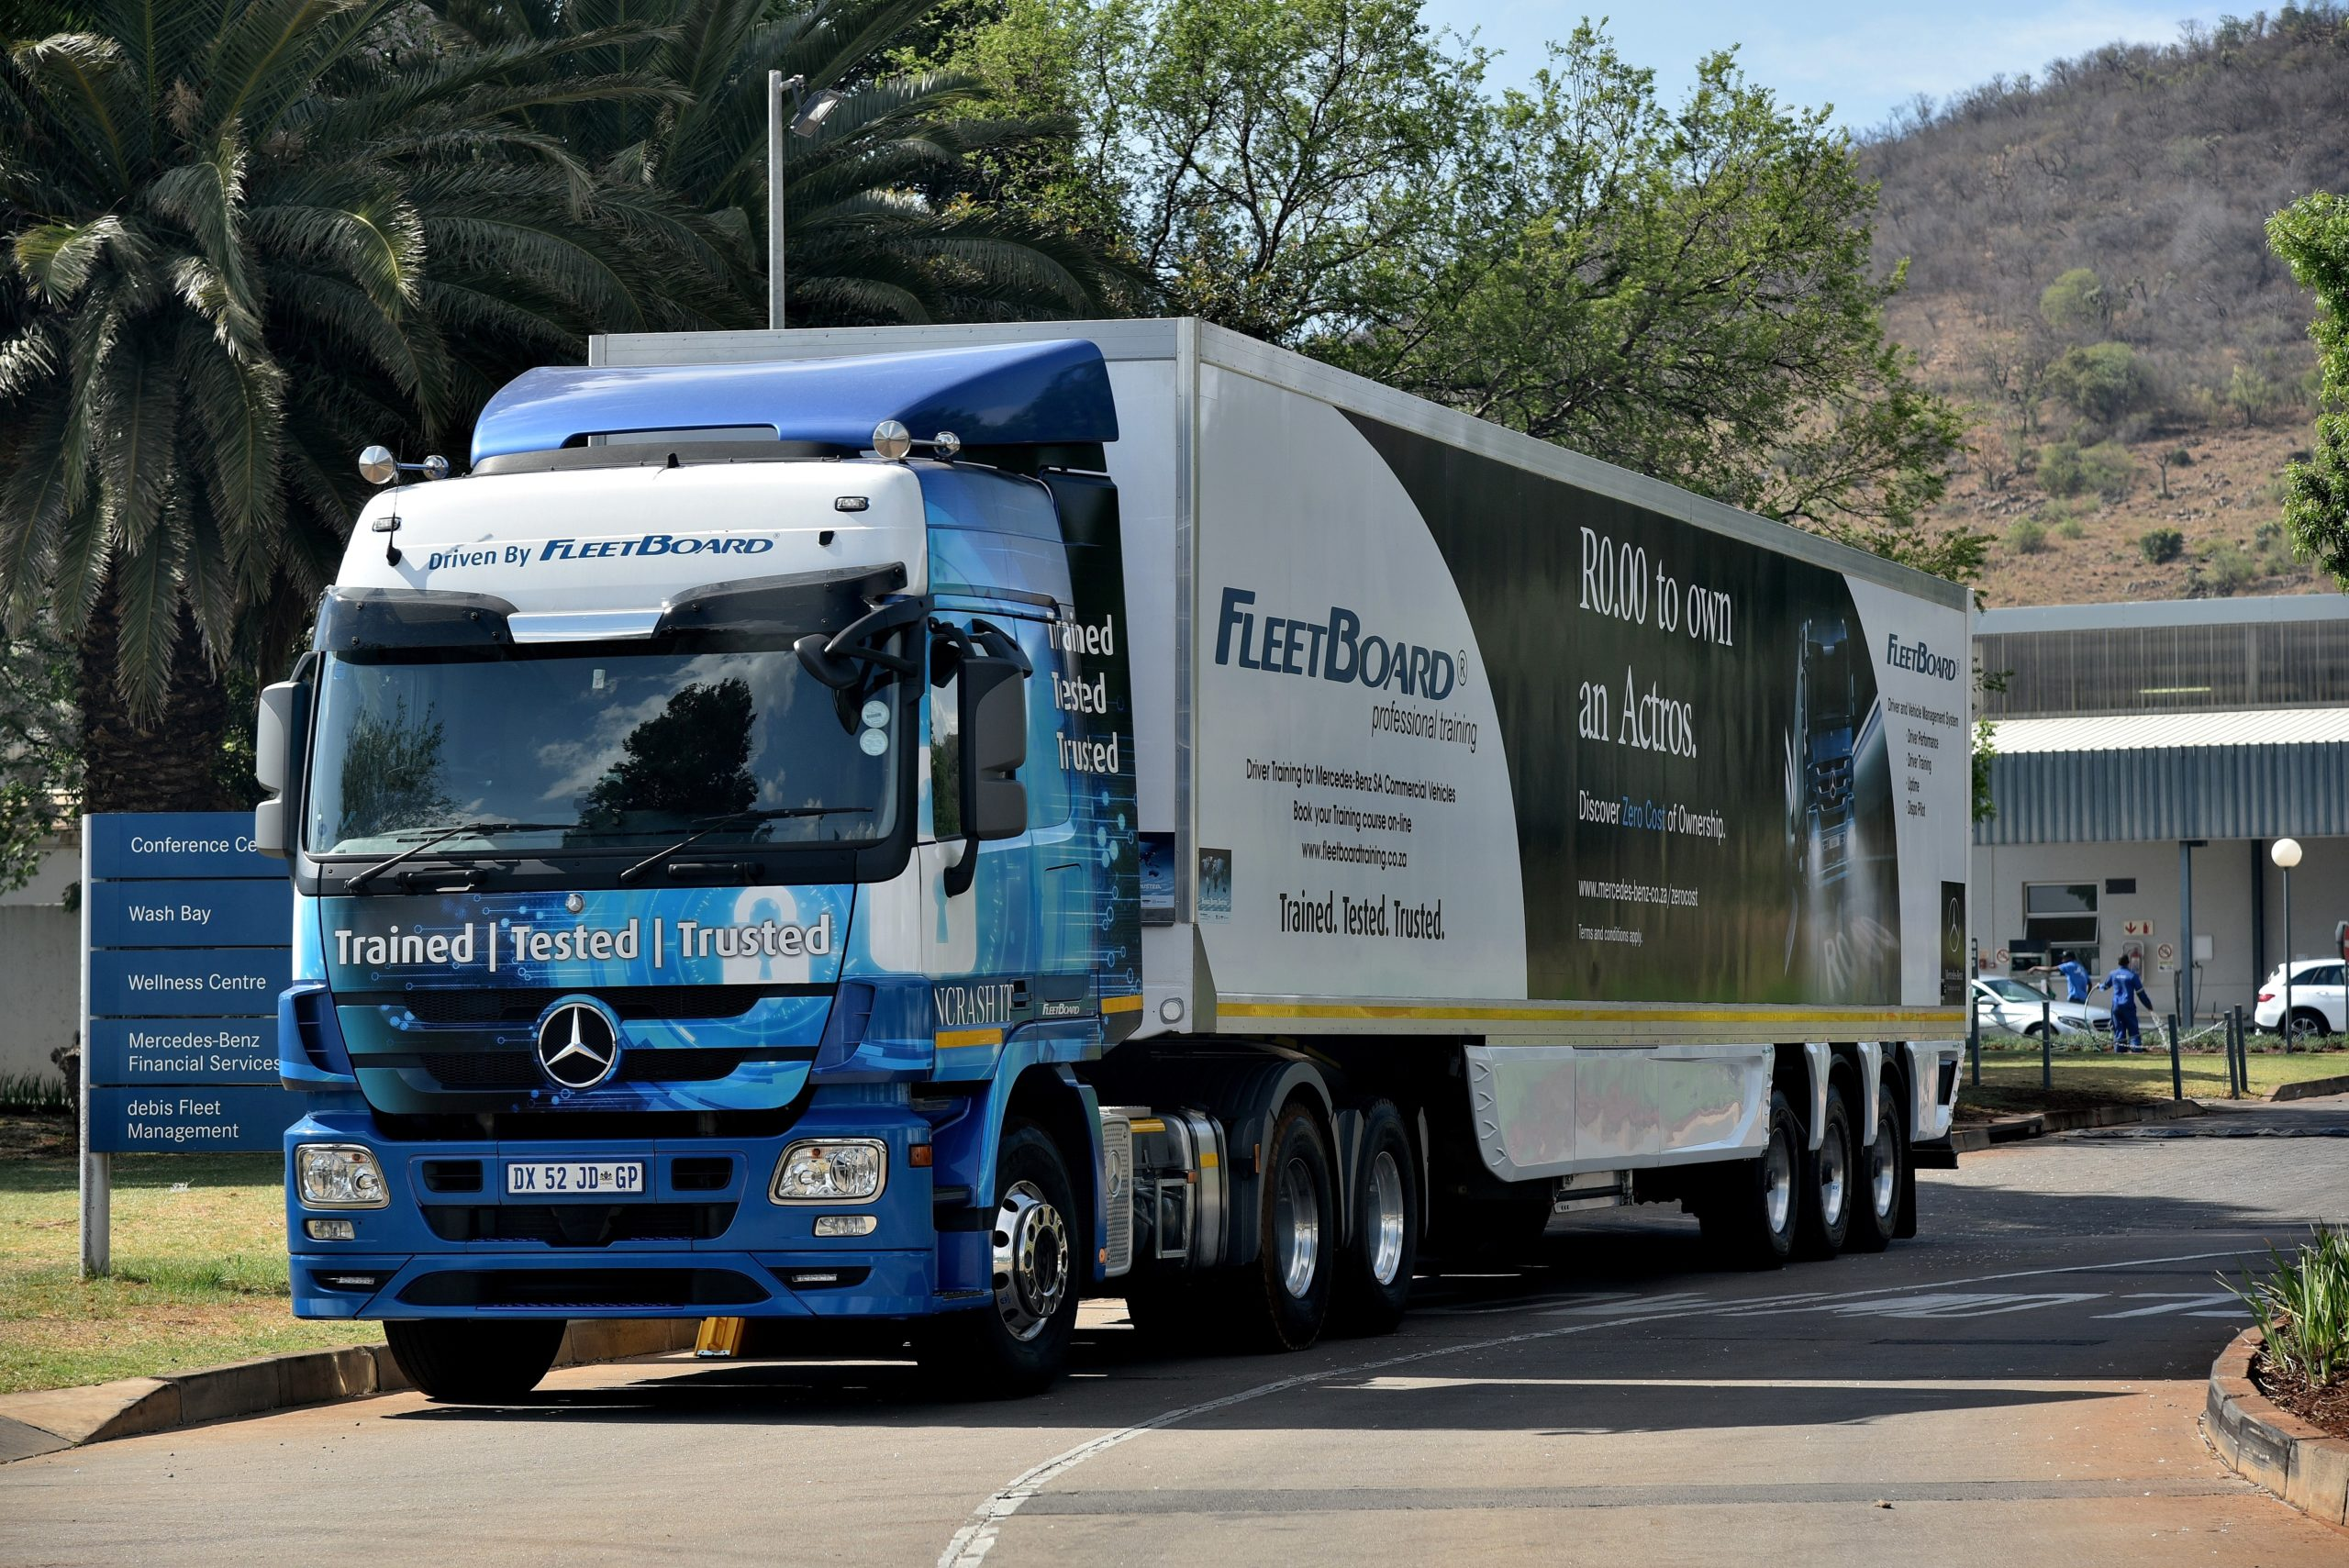 One of the magnificent rigs used in the FleetBoard Professional Driver Training programme. Mercedes-Benz Trucks is offering free driver training to 200 Mercedes-Benz truck drivers in support of the objectives of this year's National Transport Month. The training can be booked immediately, until the end of the year.